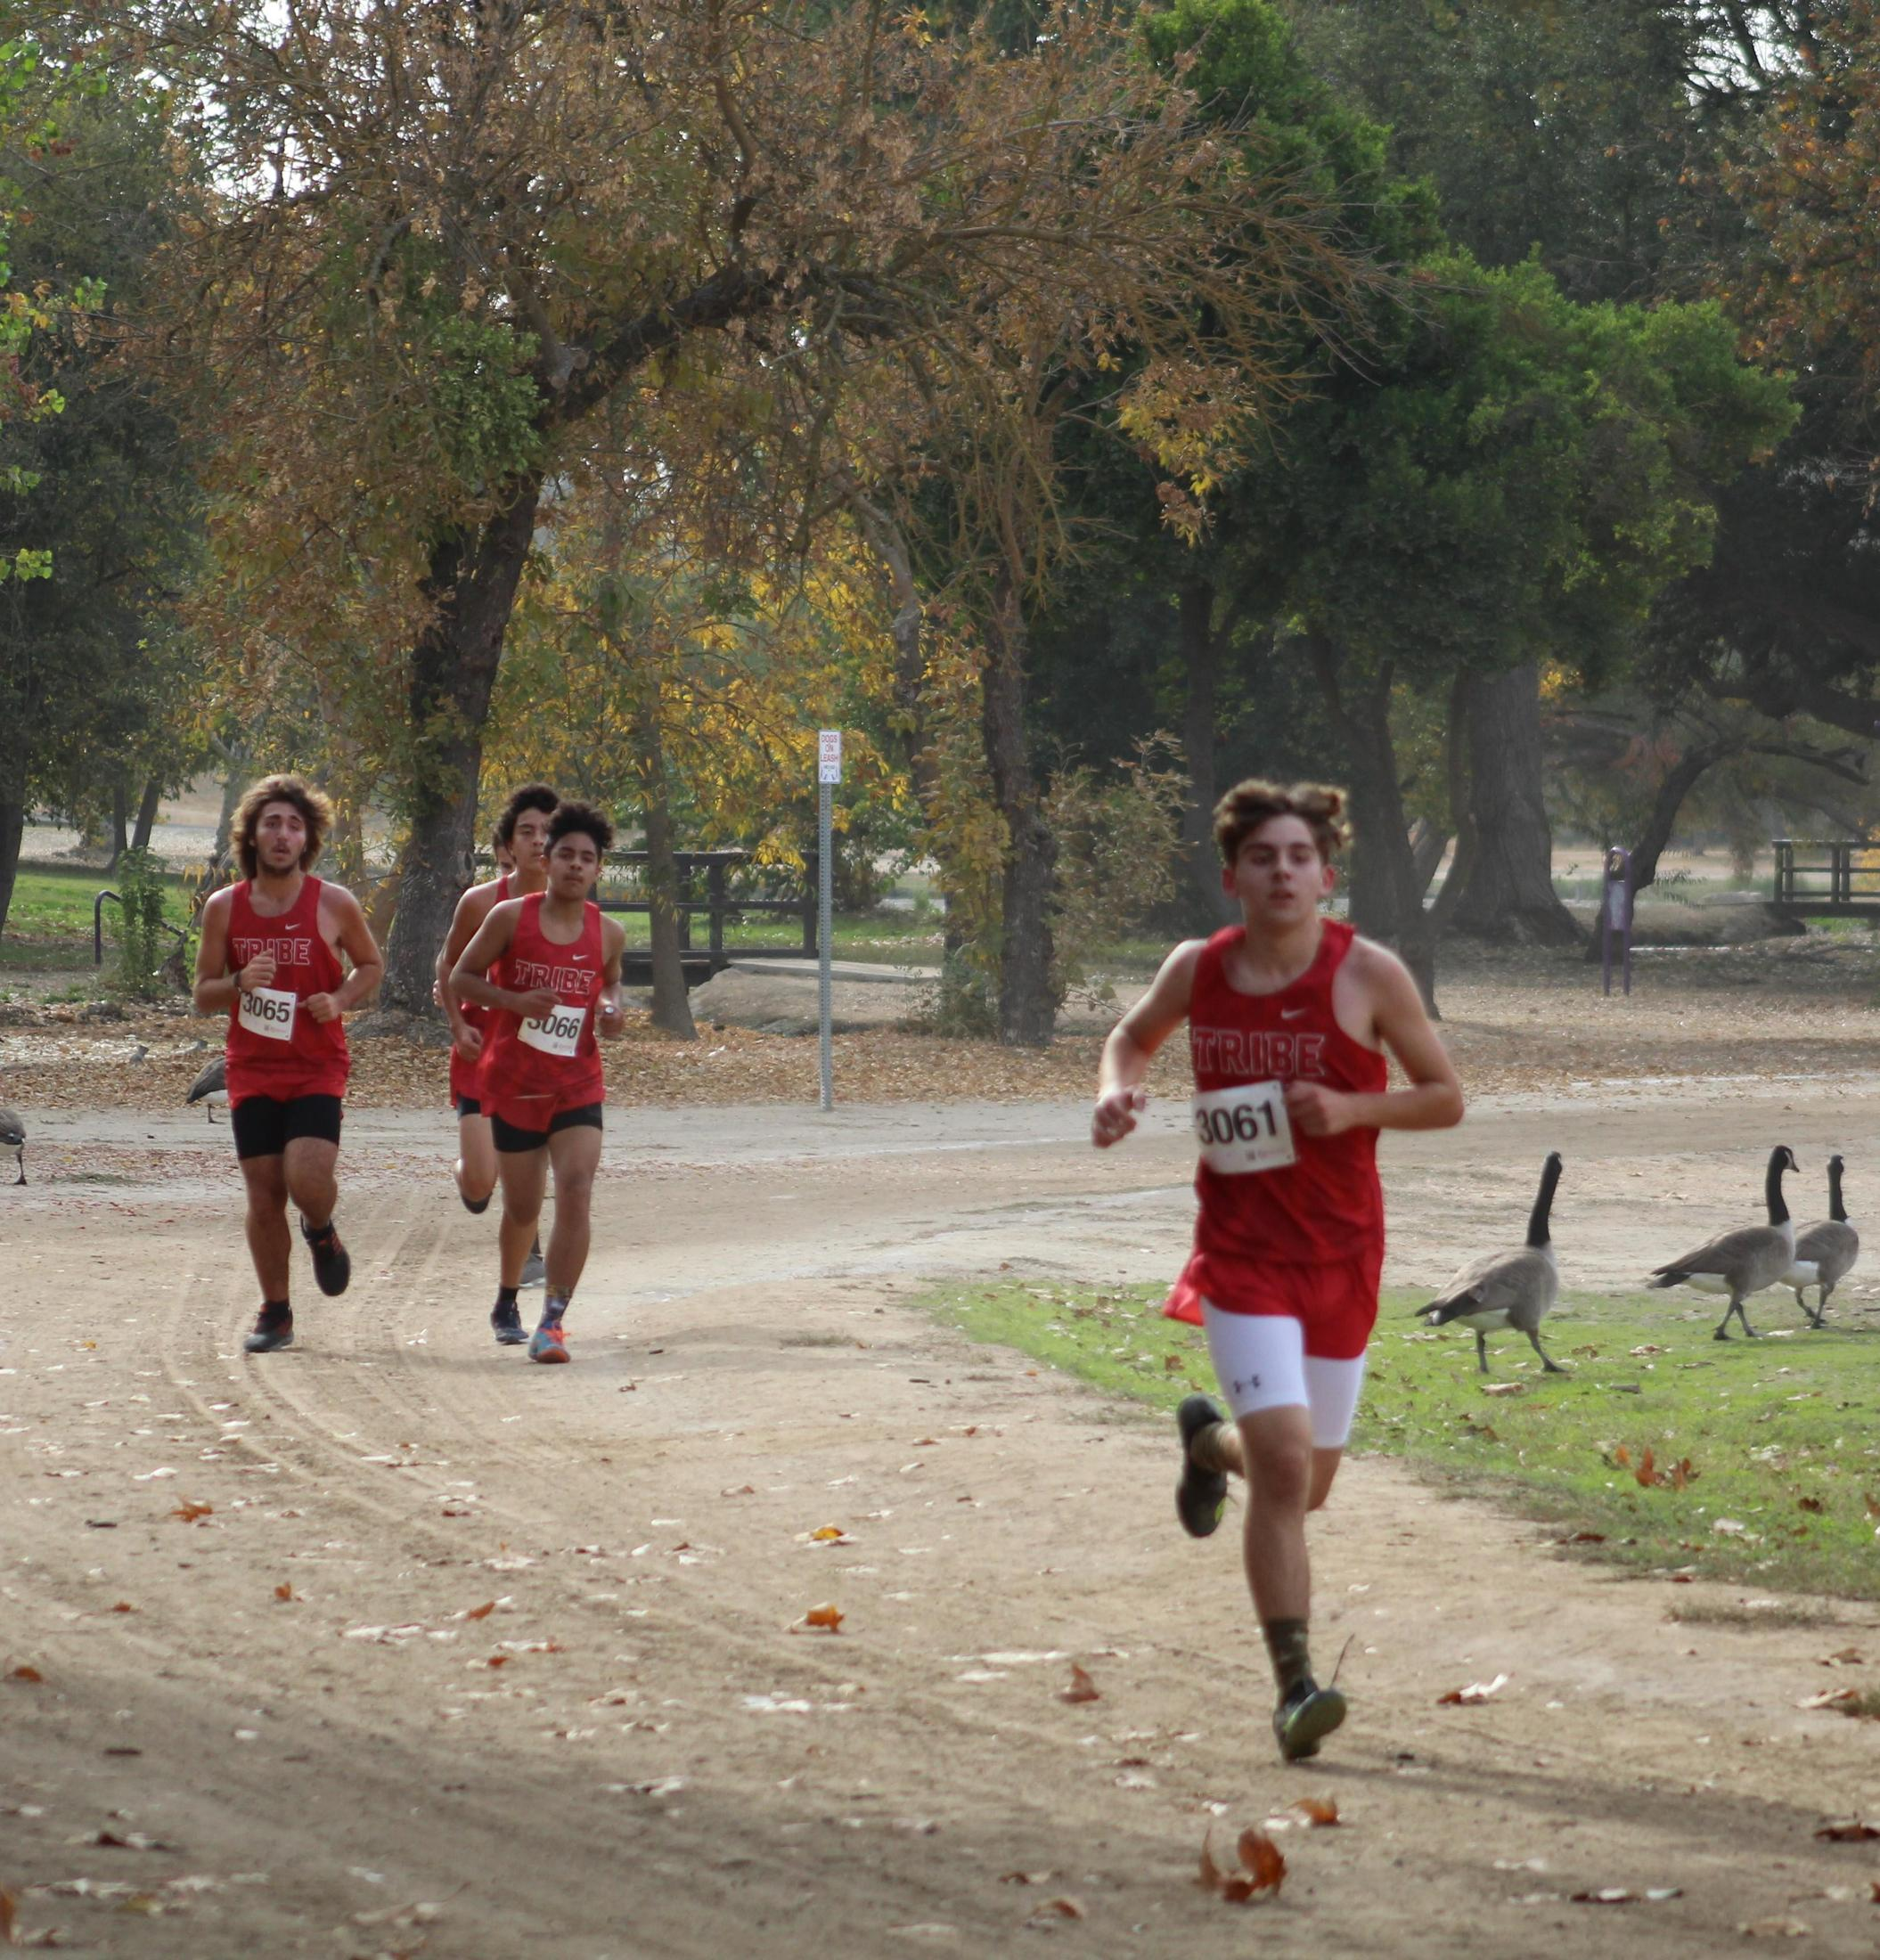 Antonio Brasil, Carson Borba and Angel Gonzales running